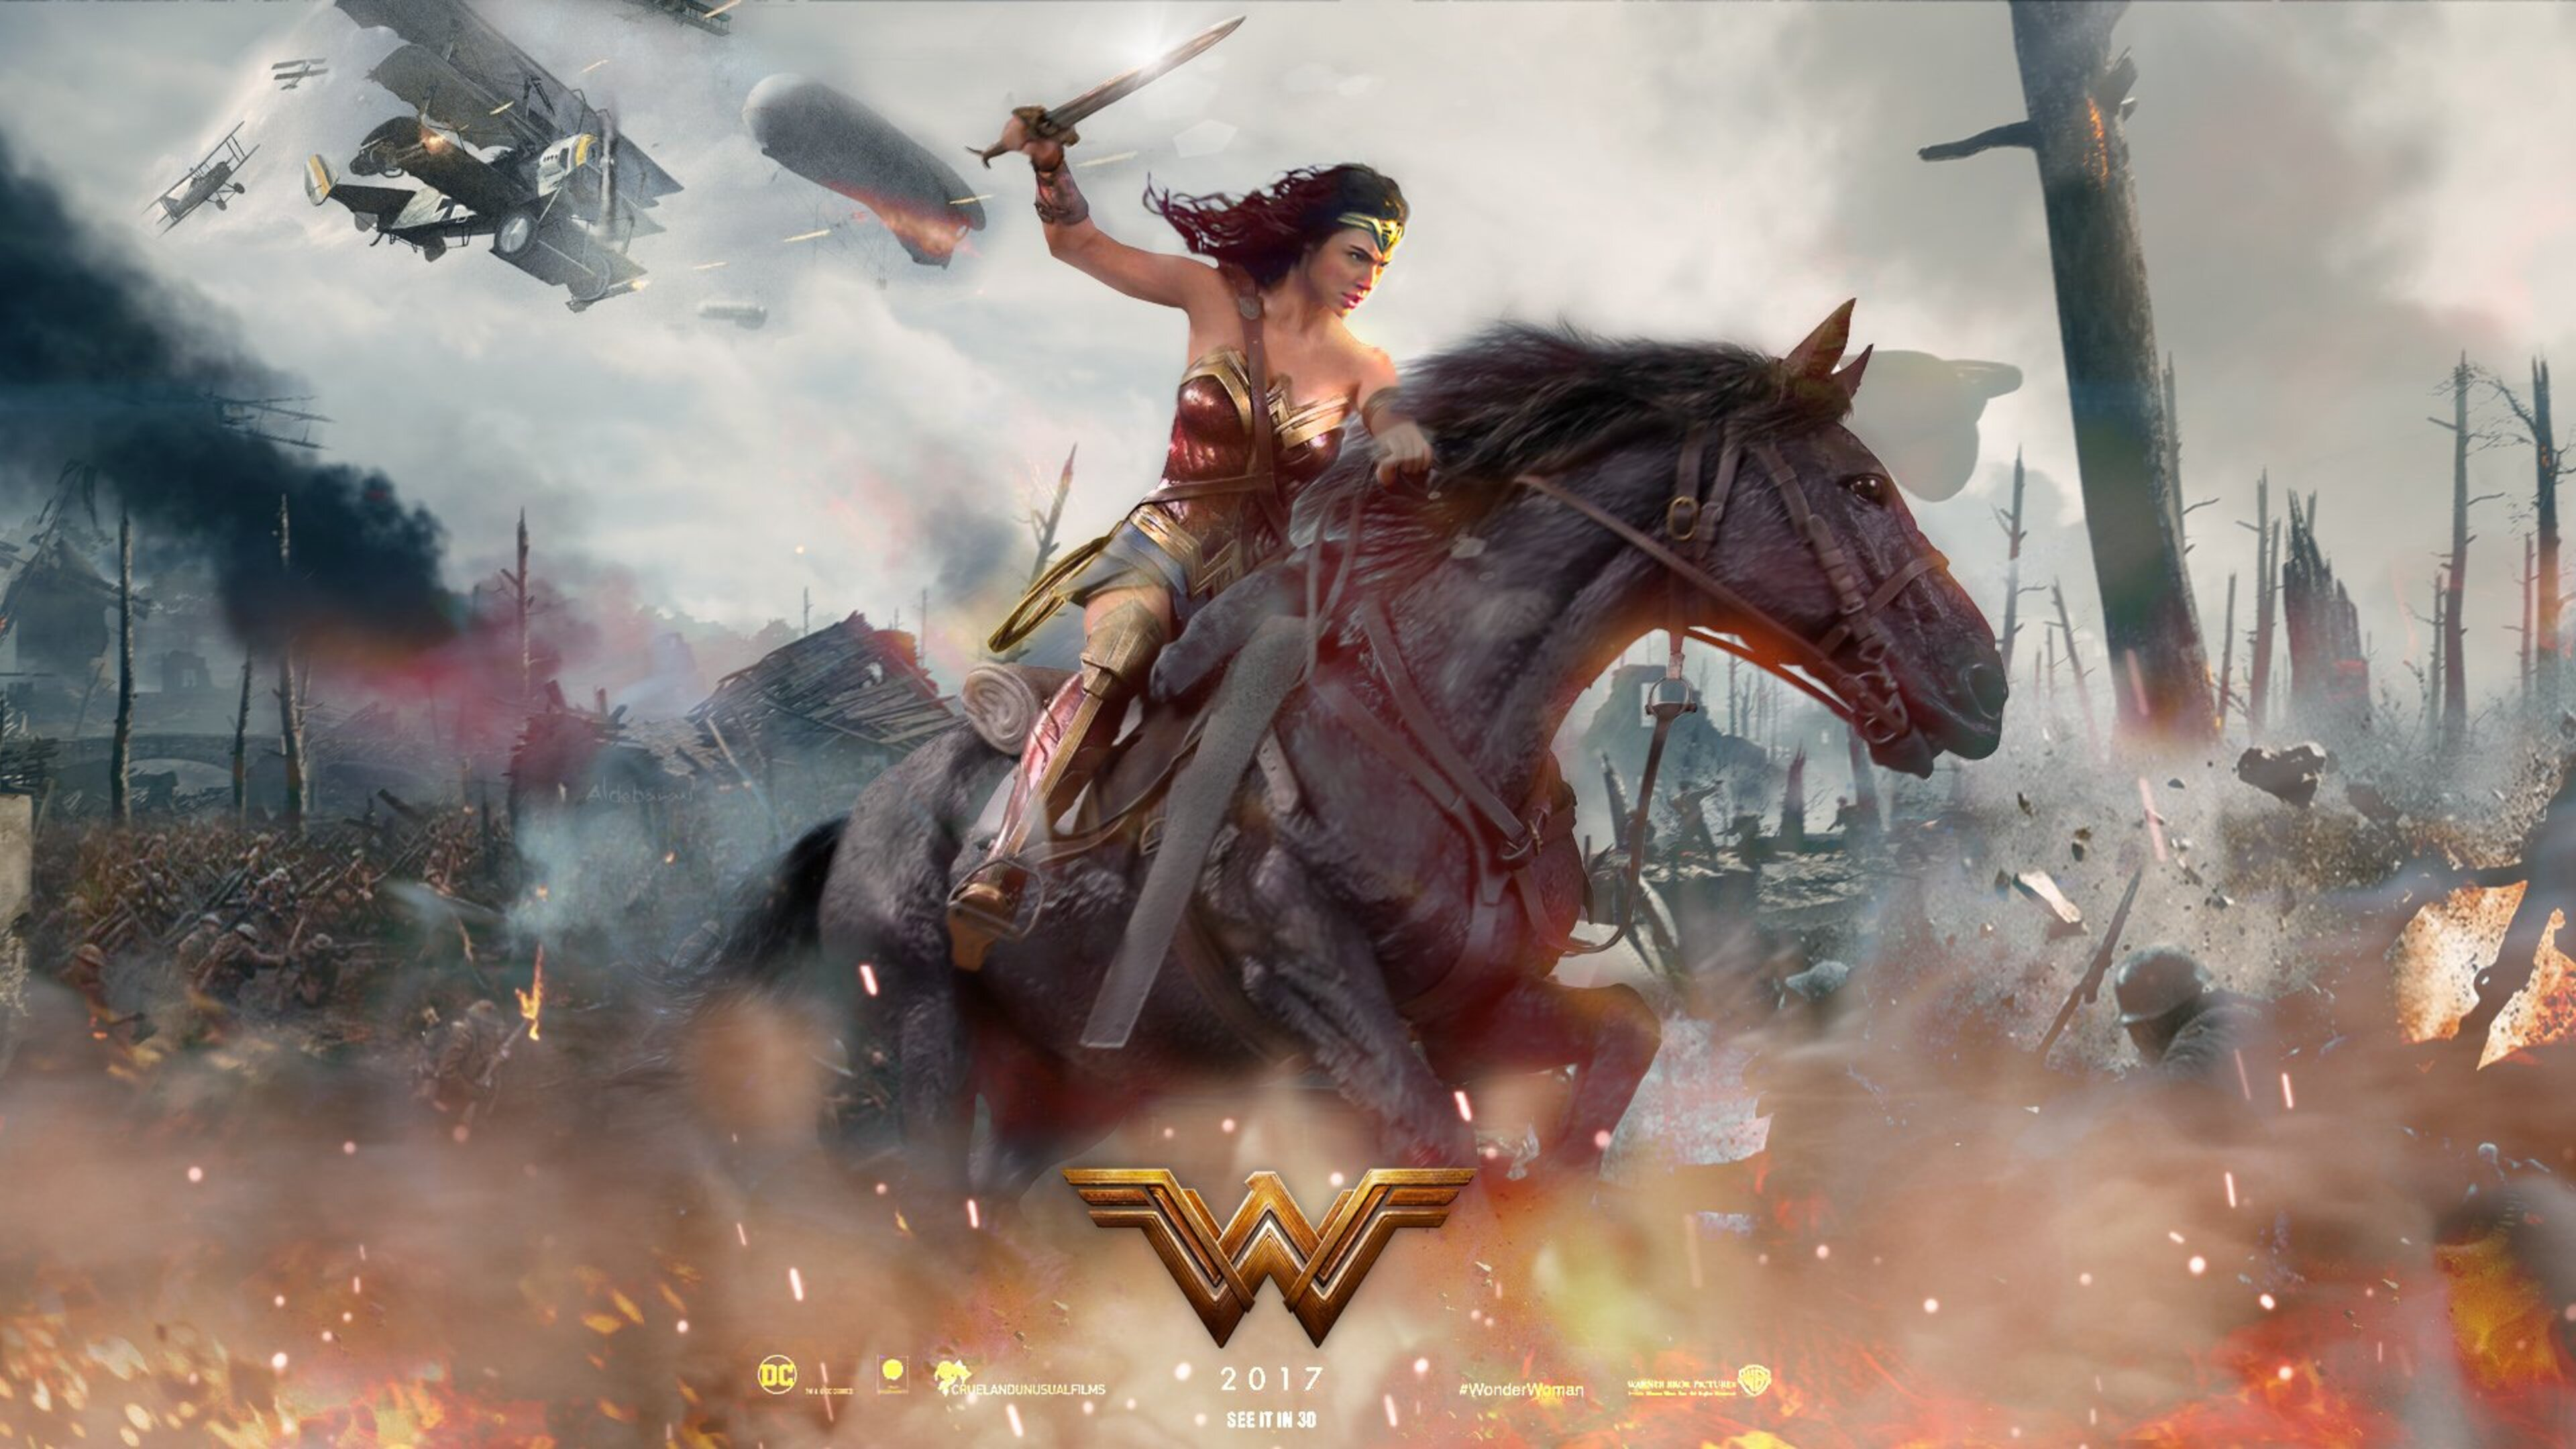 Wonder 2017 4k Movie Hd Movies 4k Wallpapers Images: 3840x2160 2017 Wonder Woman Movie Fan Art 4k HD 4k